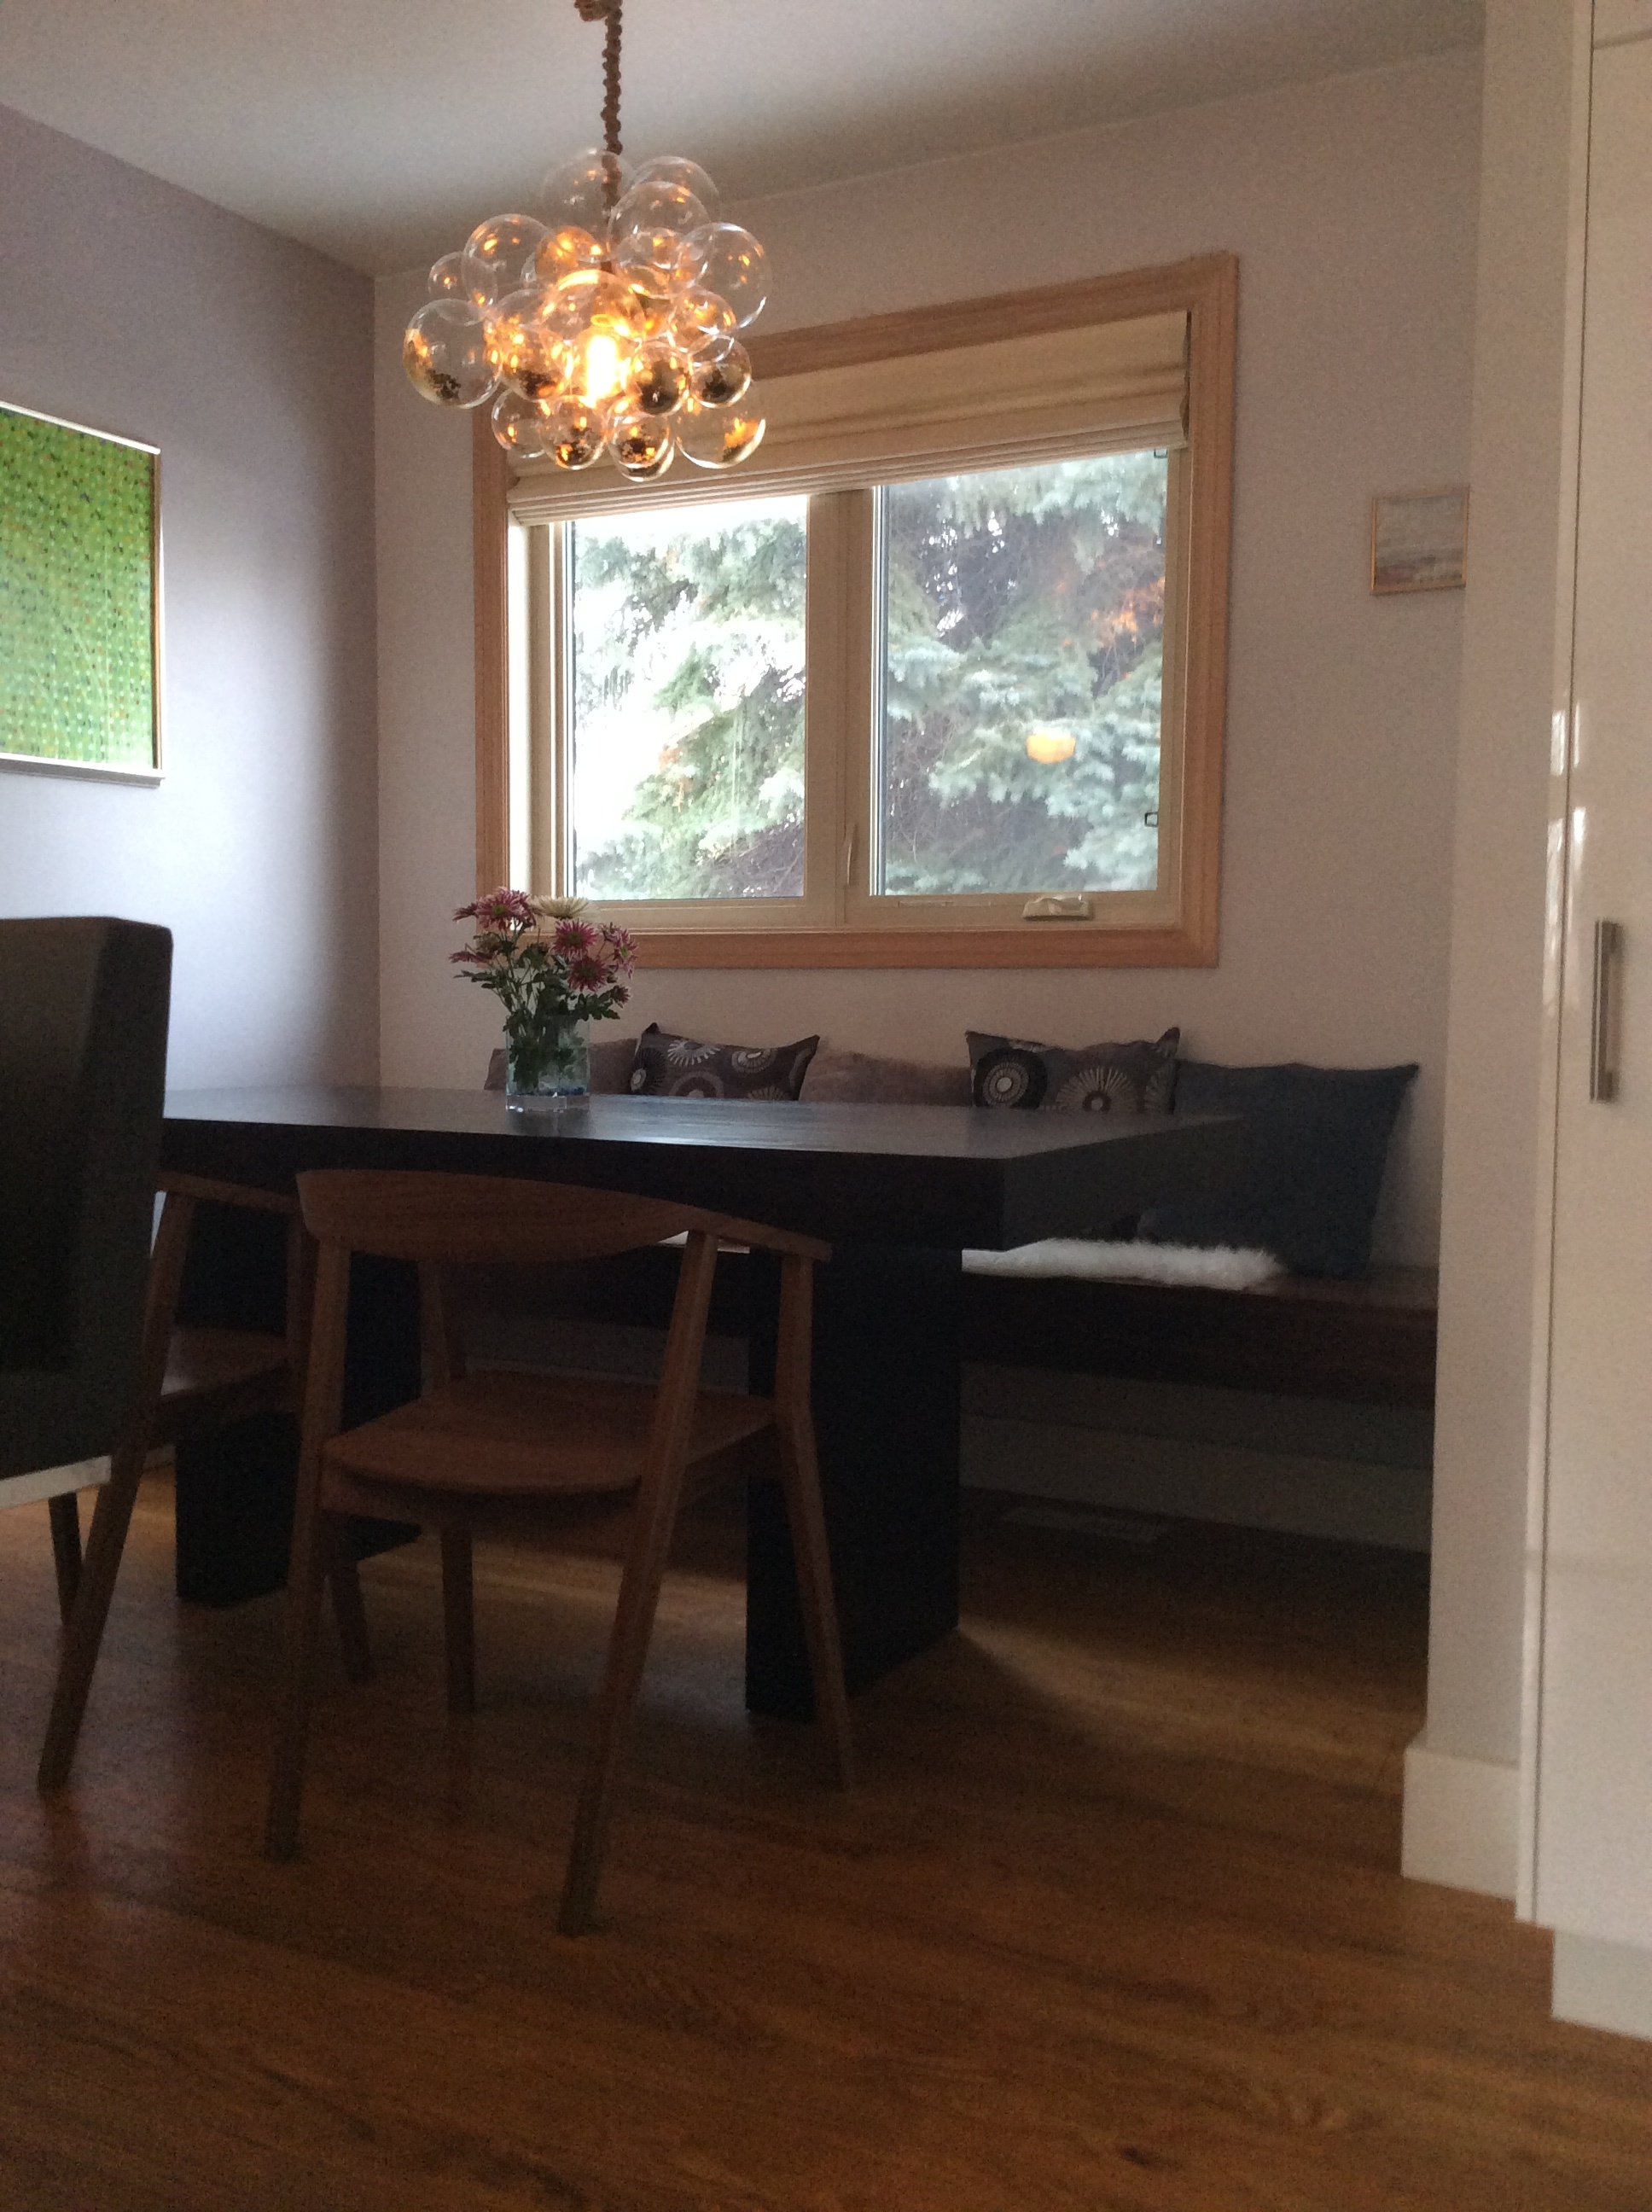 Dining table with floating bench seat and handmade chandelier.